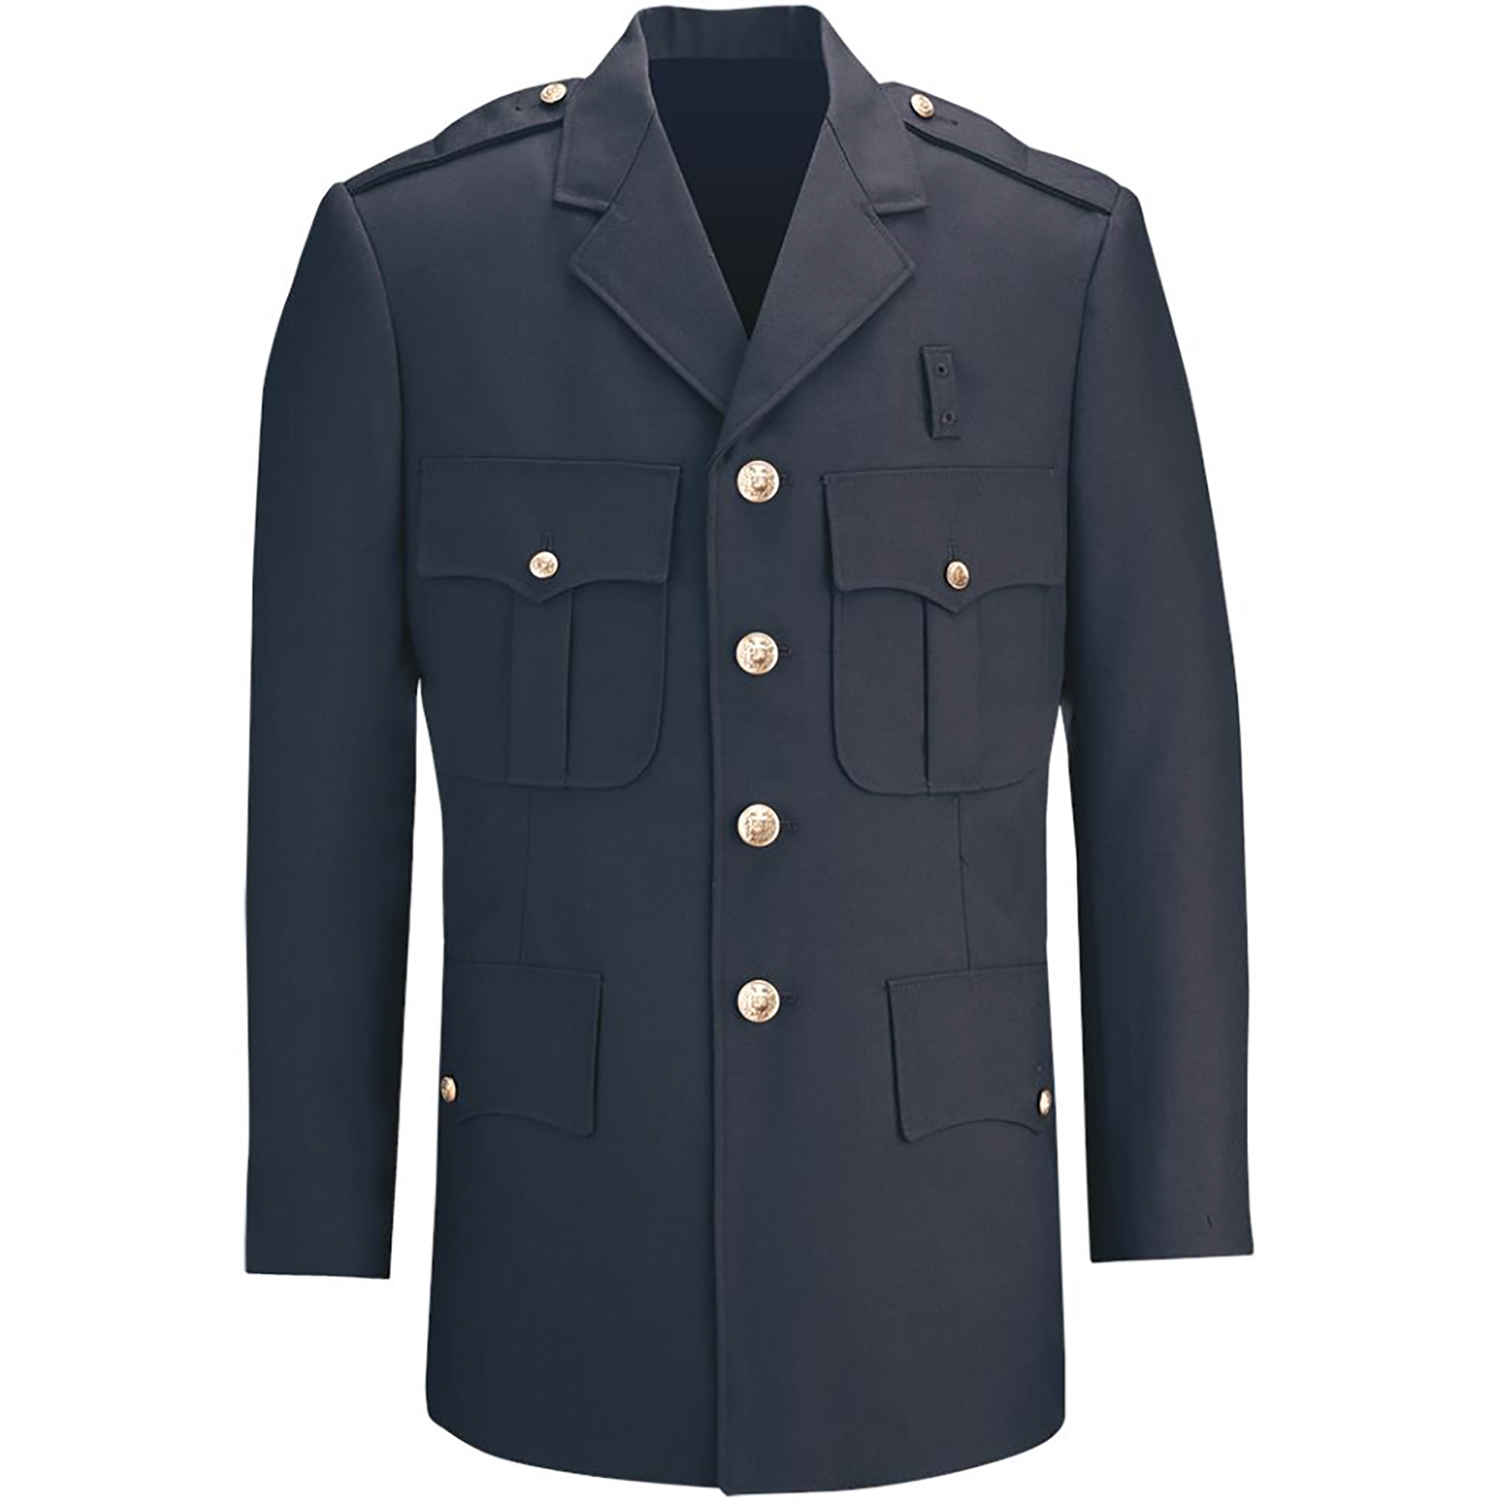 Flying Cross Mens Single Breasted Dress Coat